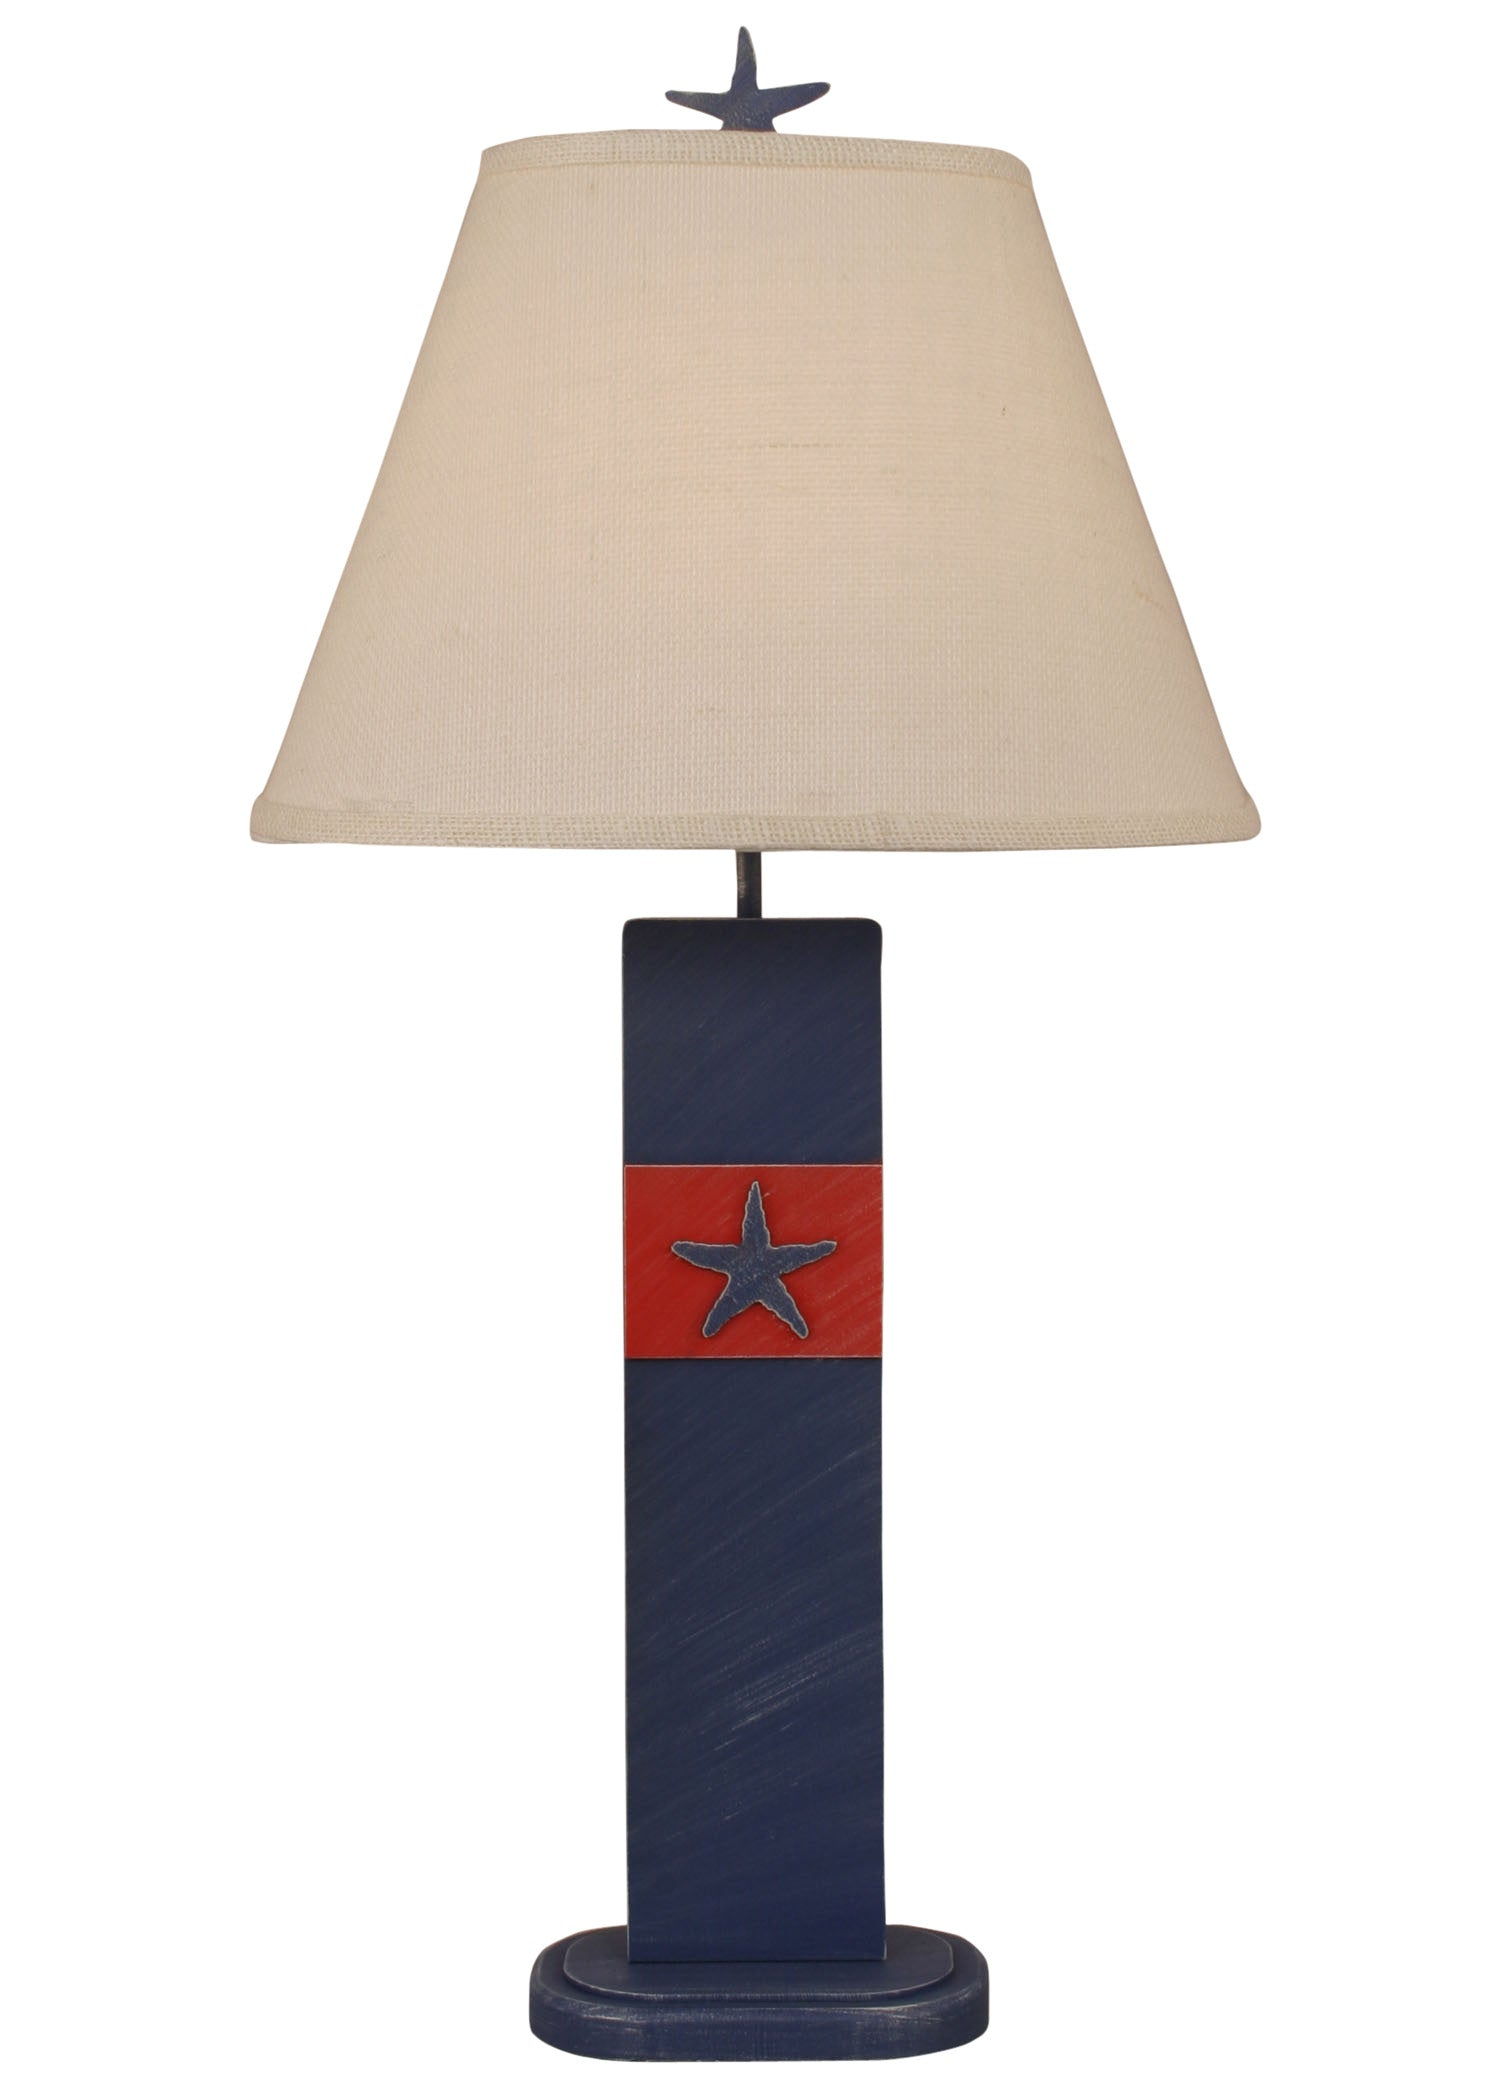 Cottage Morning Jewel/Classic Red Star Fish Table Lamp - Coast Lamp Shop